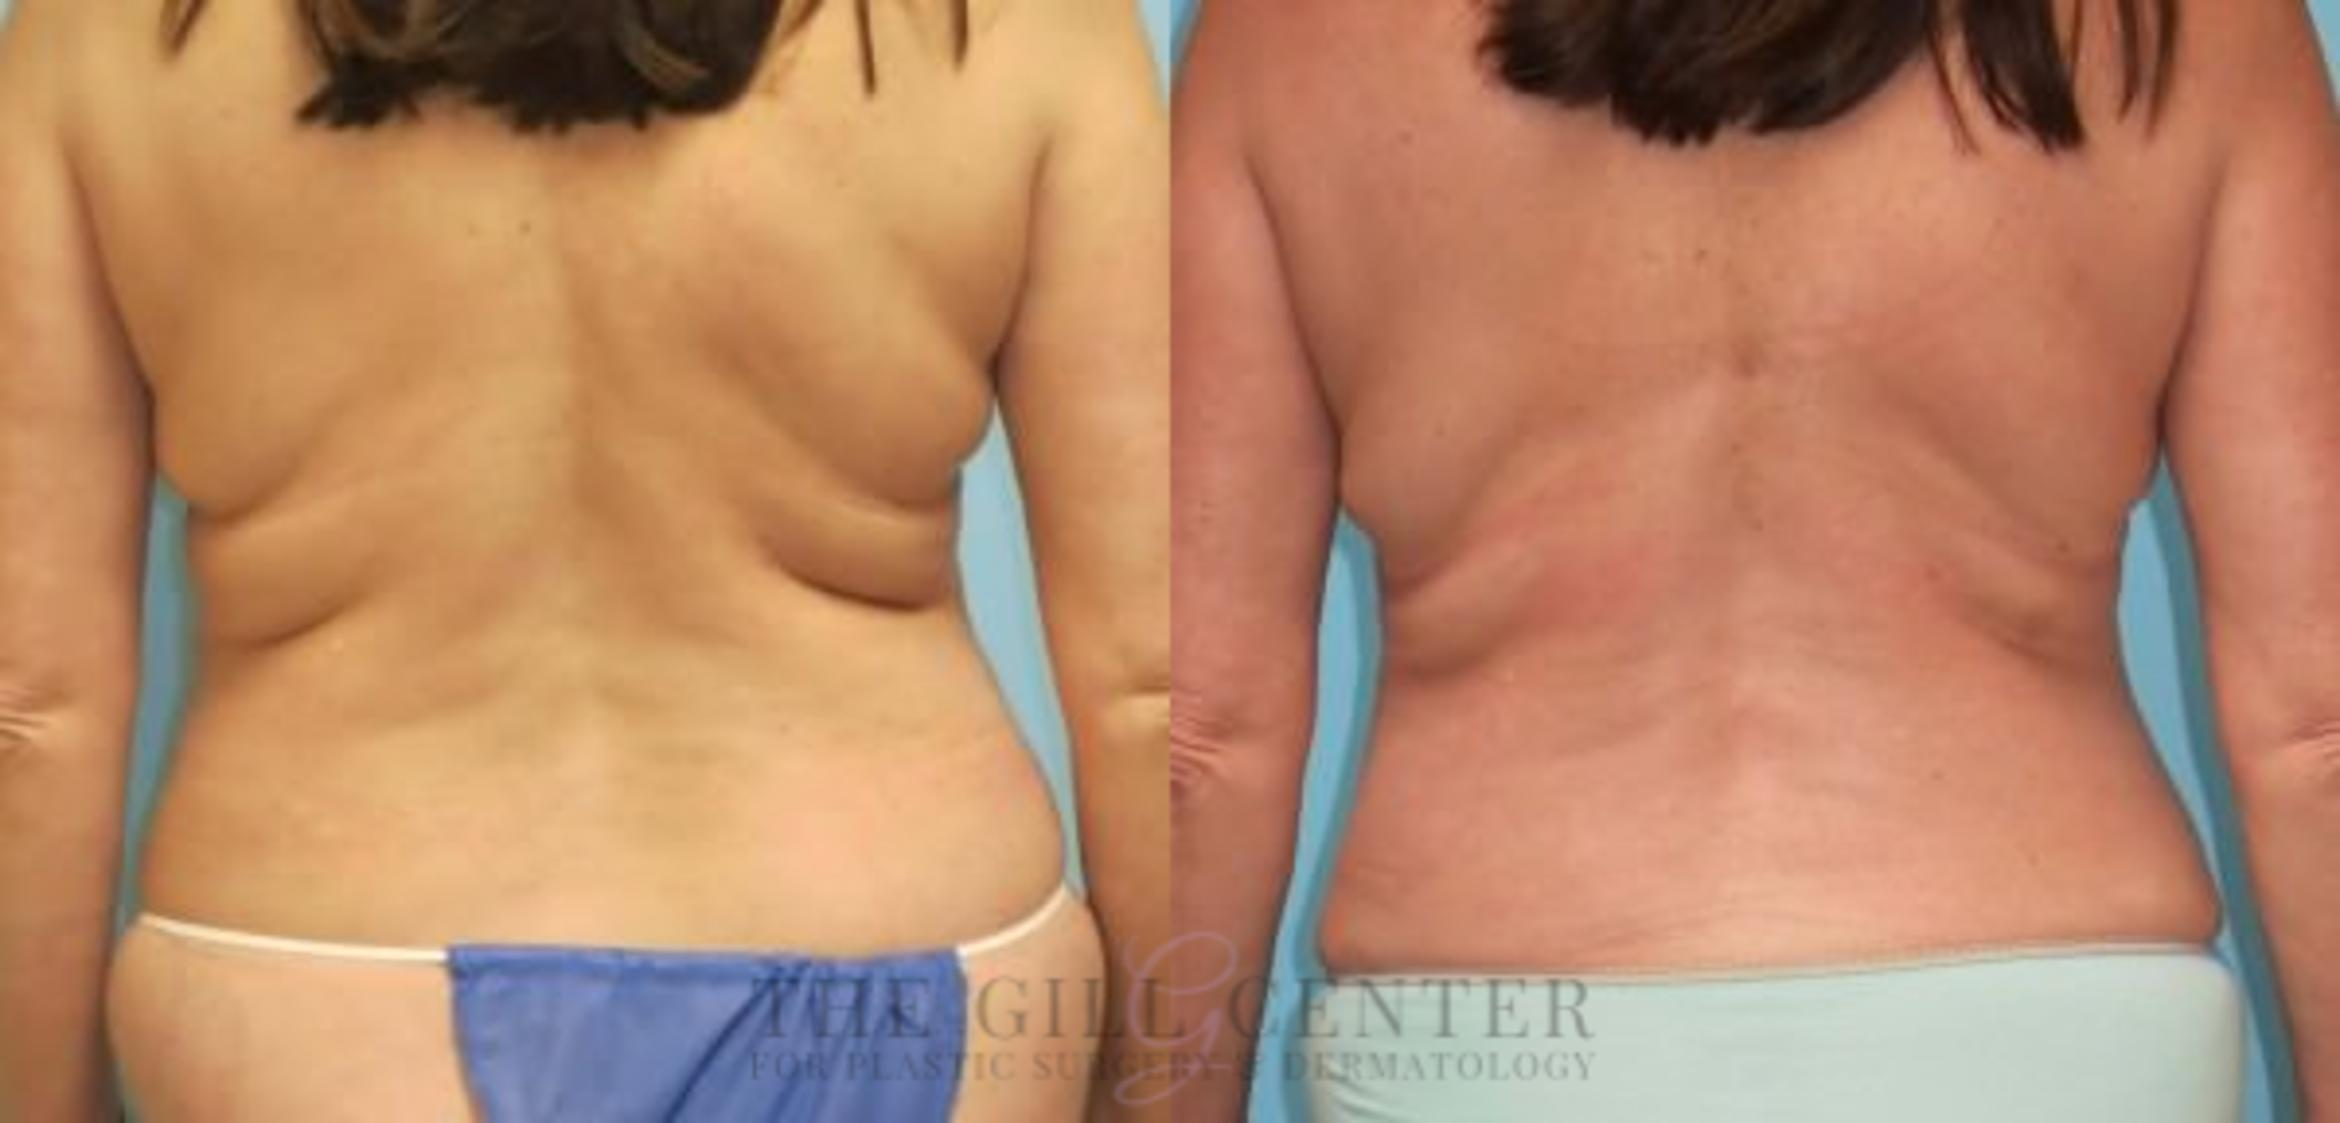 Liposuction Case 157 Before & After Back | Shenandoah, TX | The Gill Center for Plastic Surgery and Dermatology